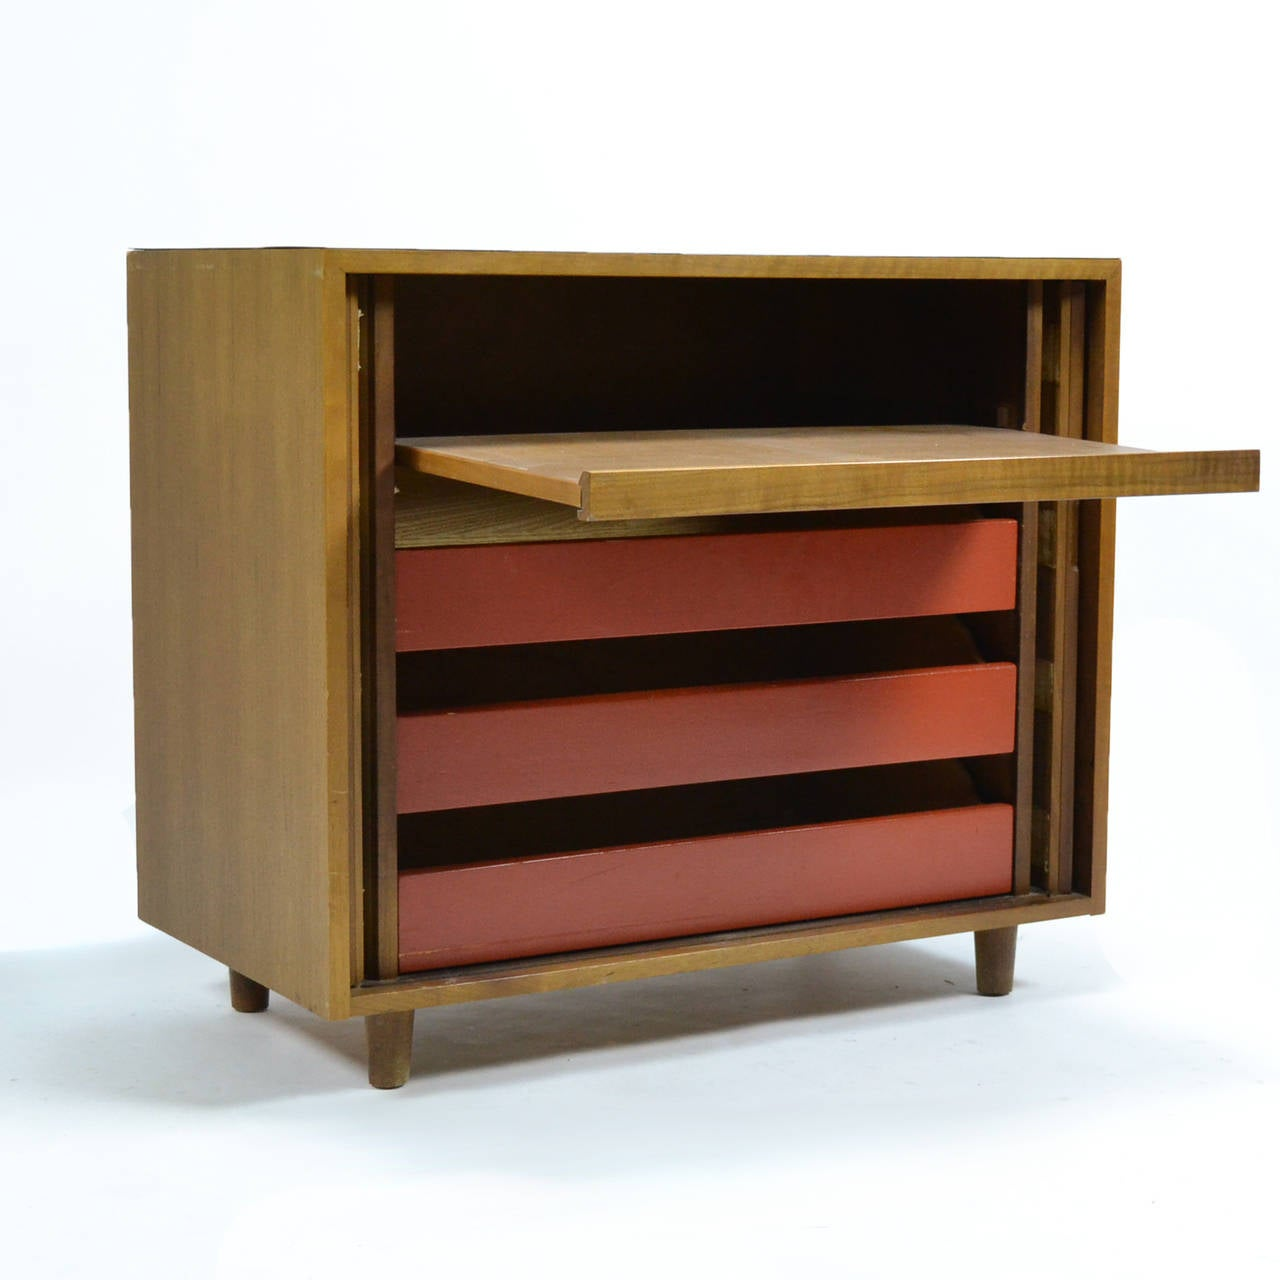 Mid-20th Century Milo Baughman Tambour Door Cabinet by Glenn of California For Sale